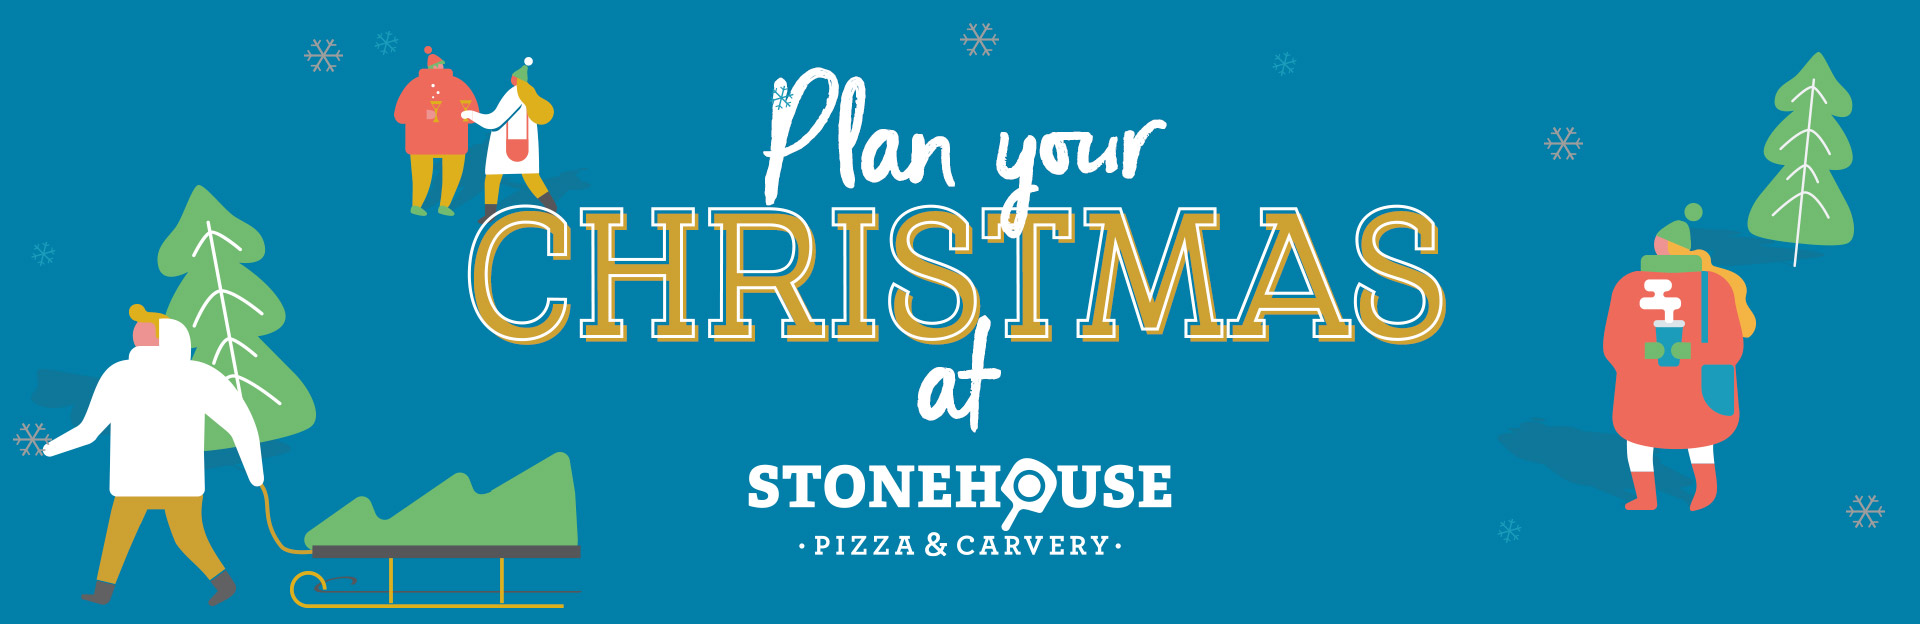 Let's celebrate, it's Christmas at Stonehouse Pizza & Carvery